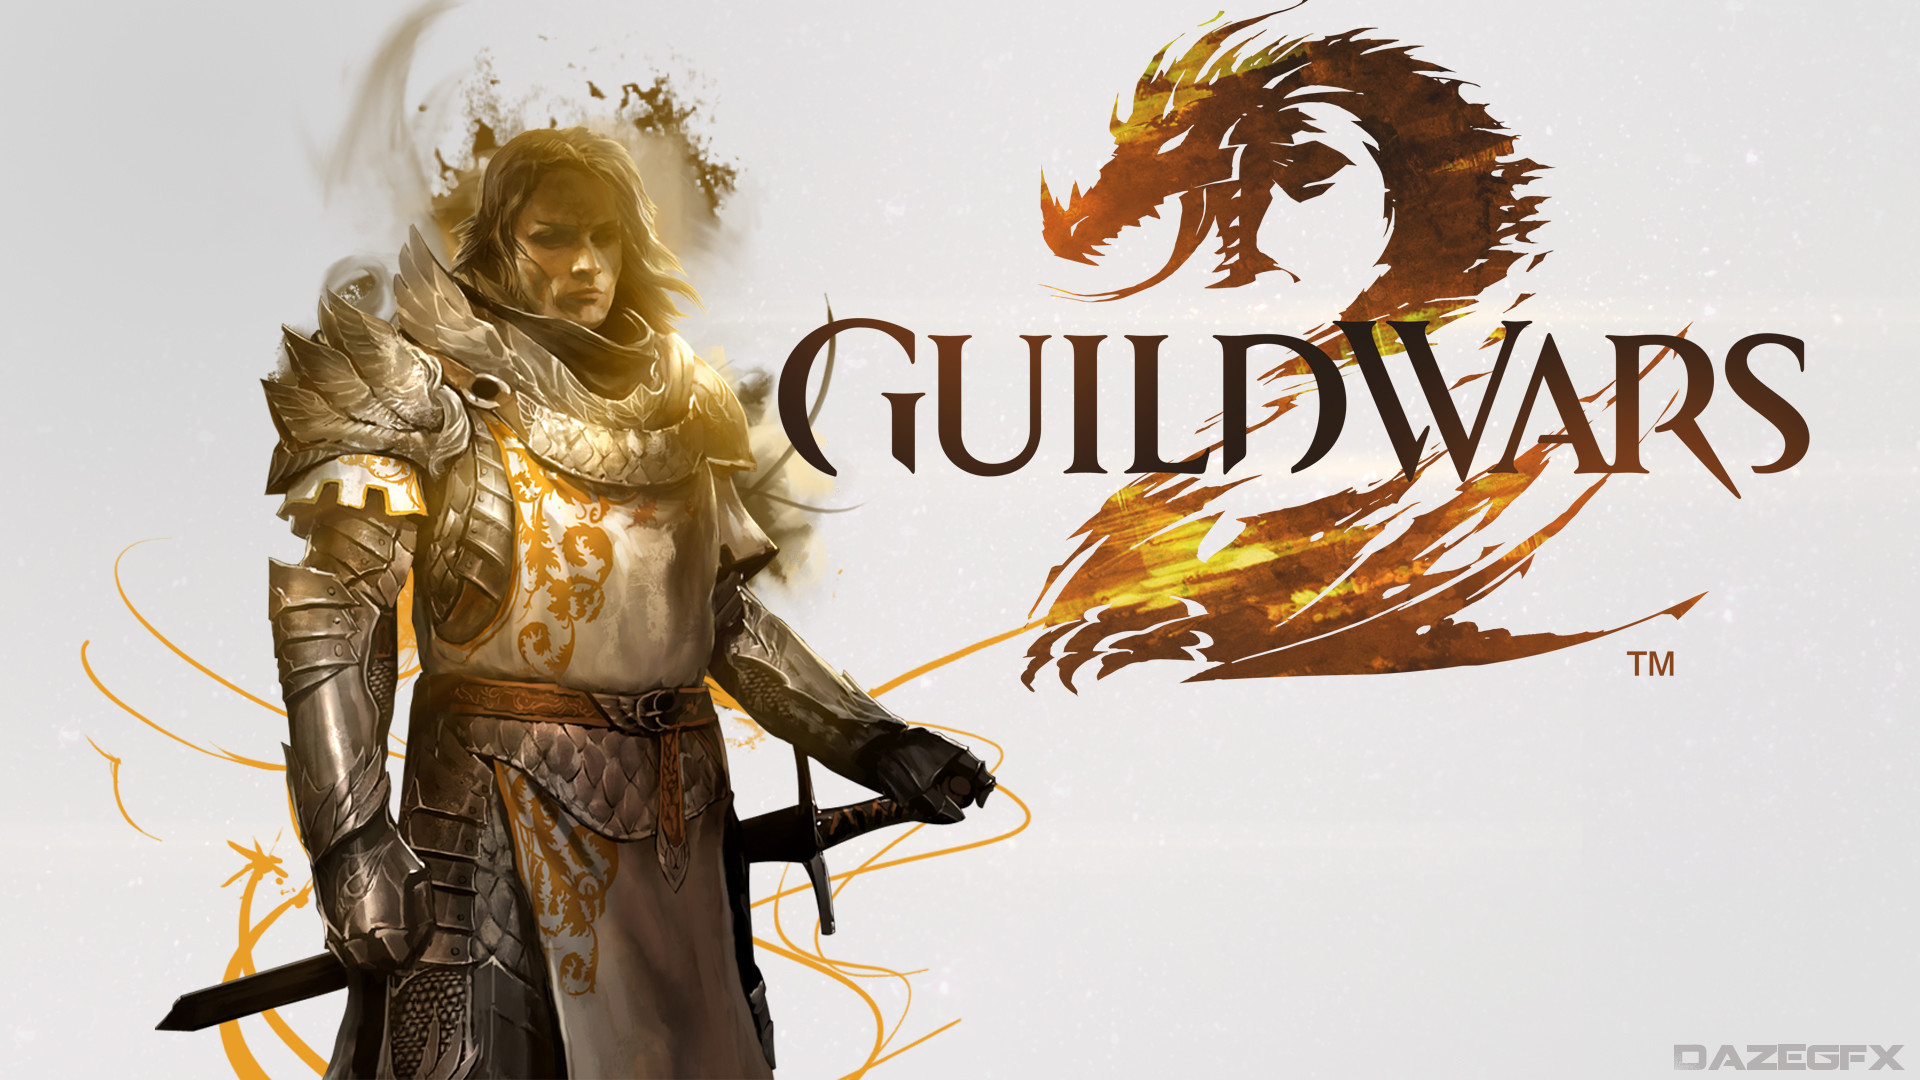 1920x1080 guild wars 2 hd pictures hd wallpapers artwork tablet colourful desktop  wallpapers samsung phone wallpapers widescreen digital photos 1920×1080  Wallpaper HD